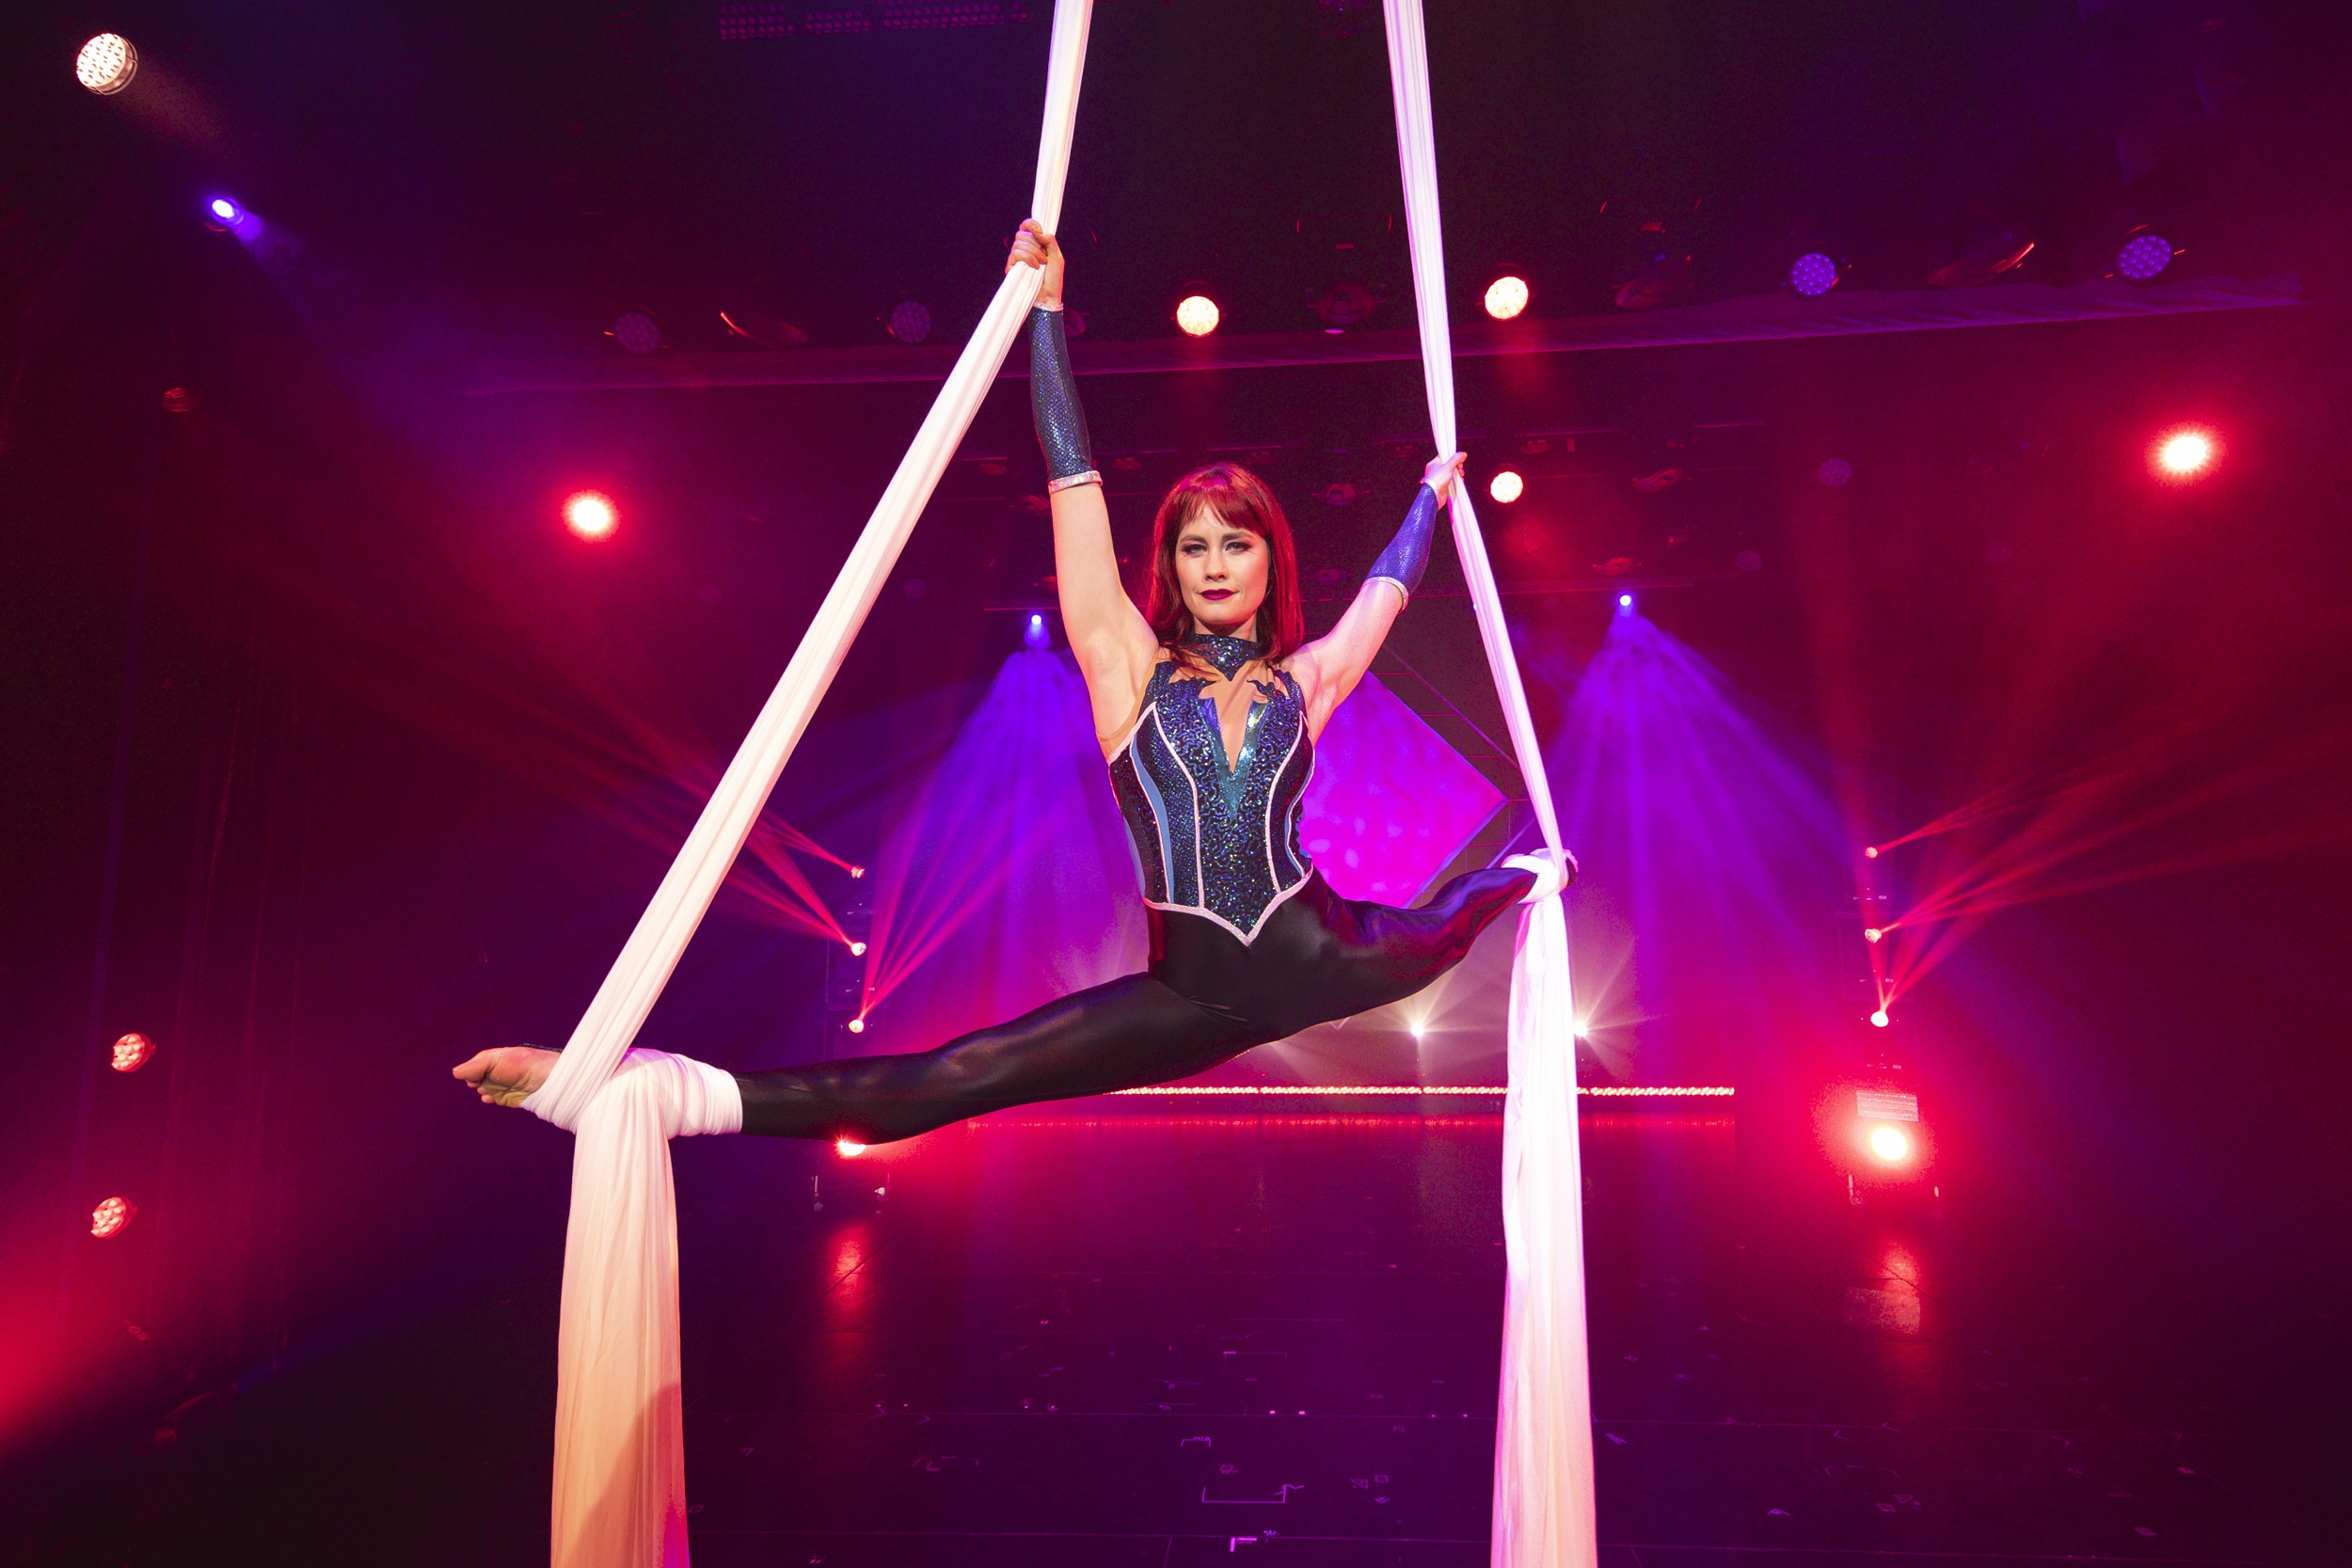 Carnival Cruise Line Unveils New Aerial Illusion Show, Airia exclusive to Australian audiences onboard Carnival Splendor